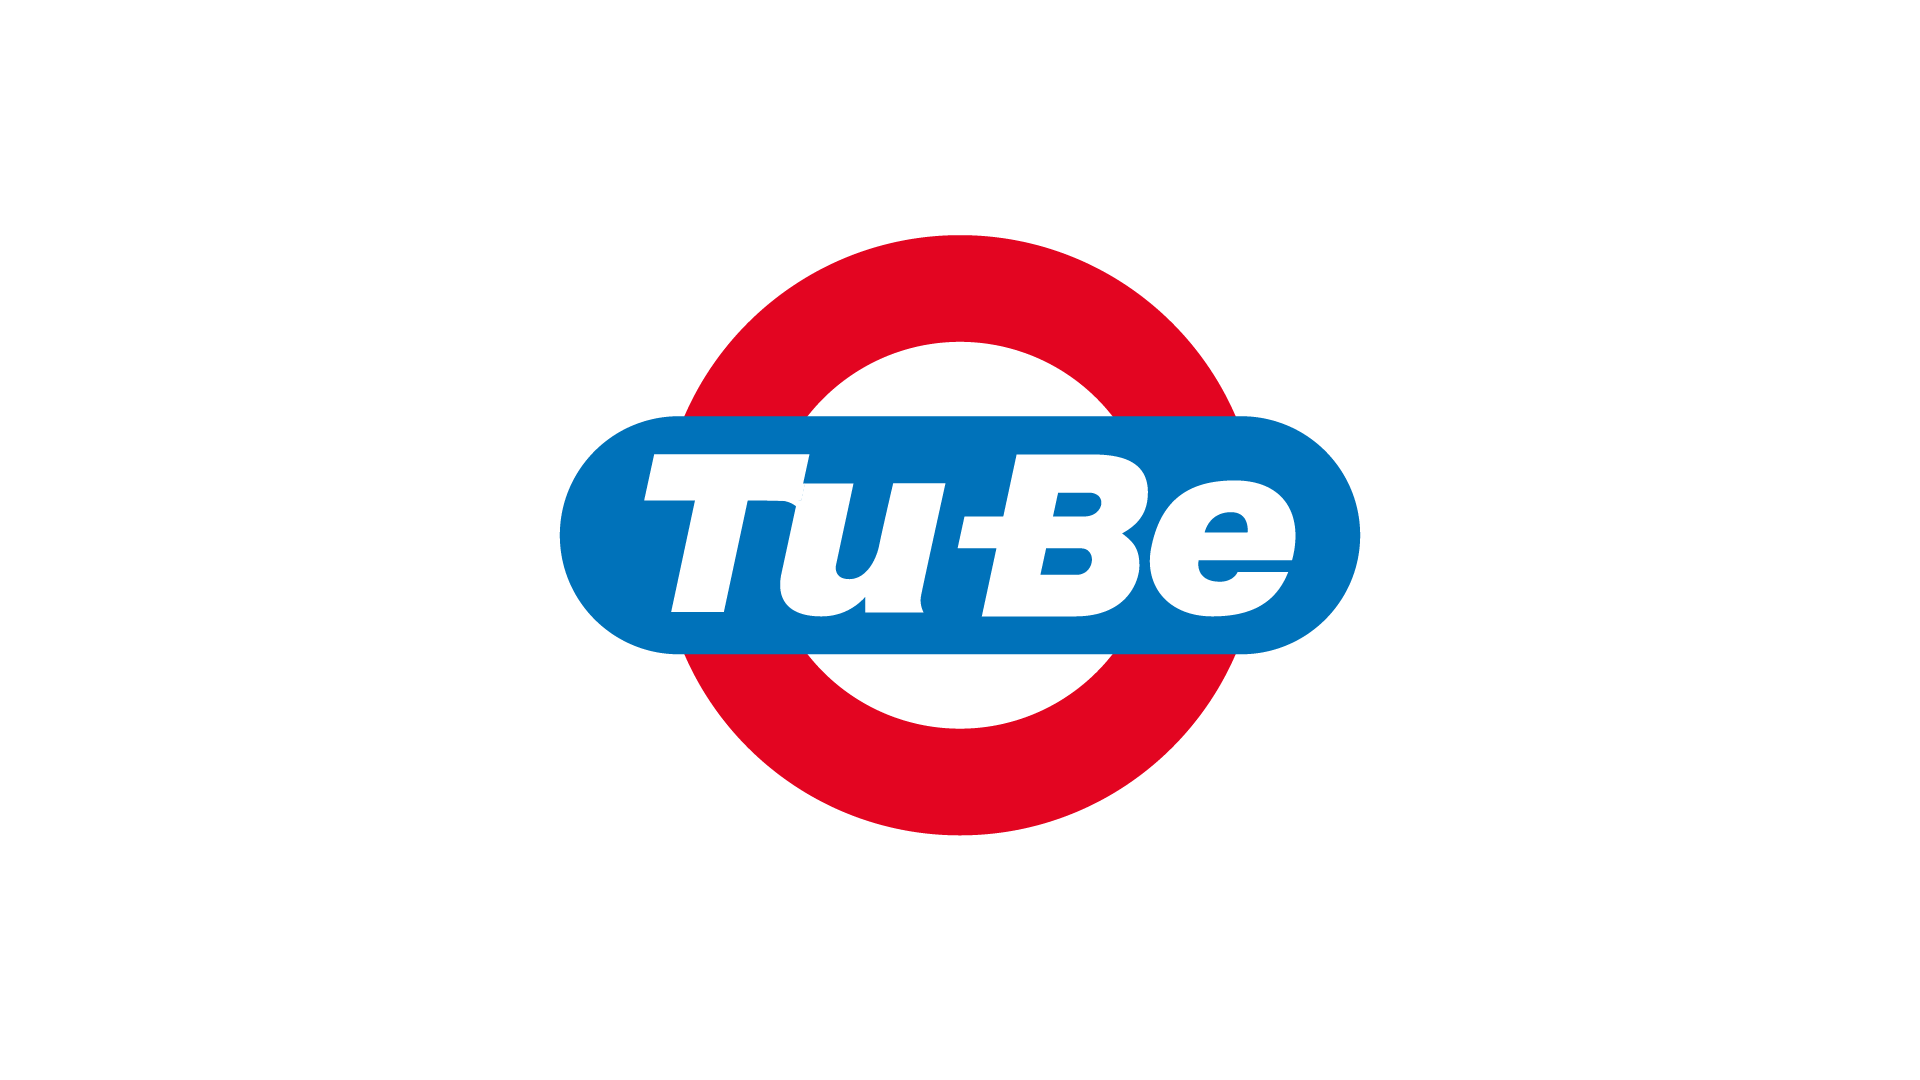 tube_cover